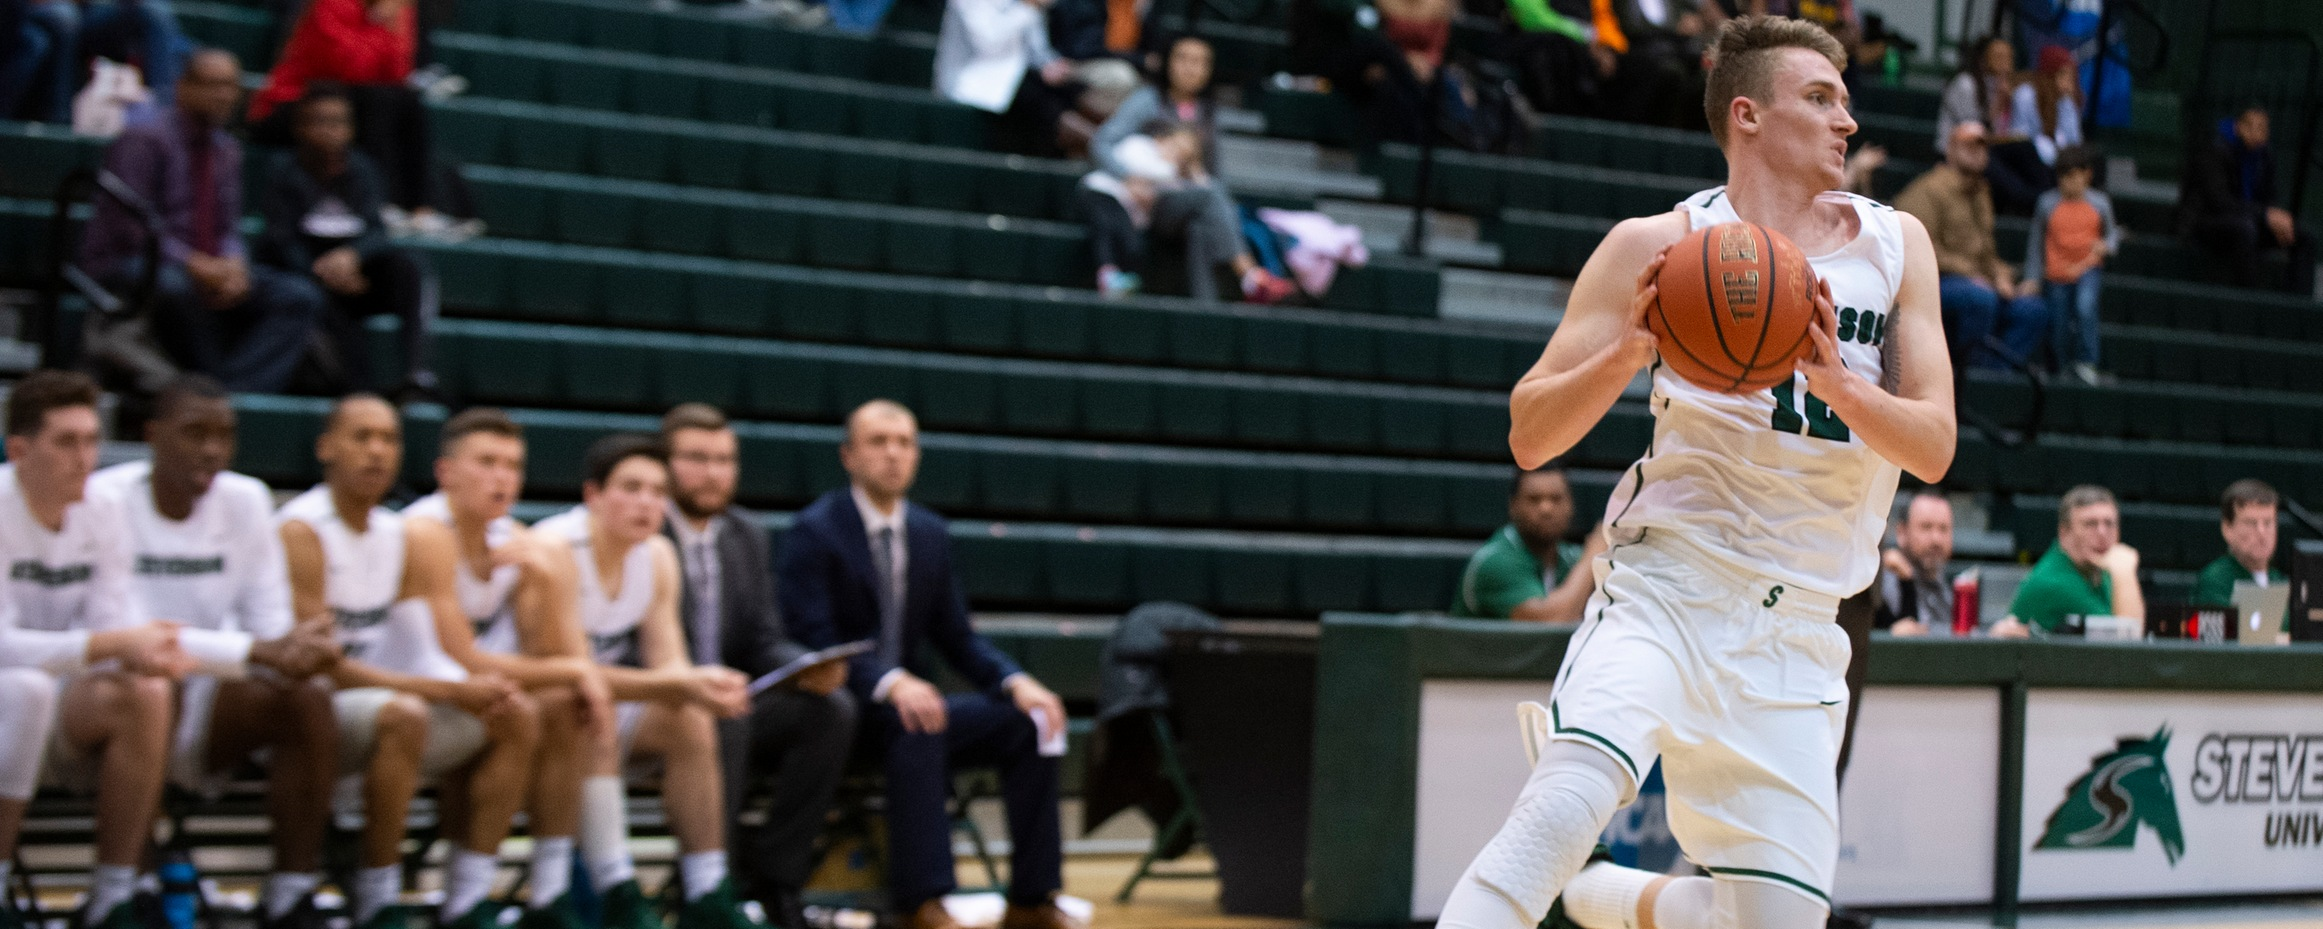 Four In Double Figures As Mustangs Move Past Penn State Berks